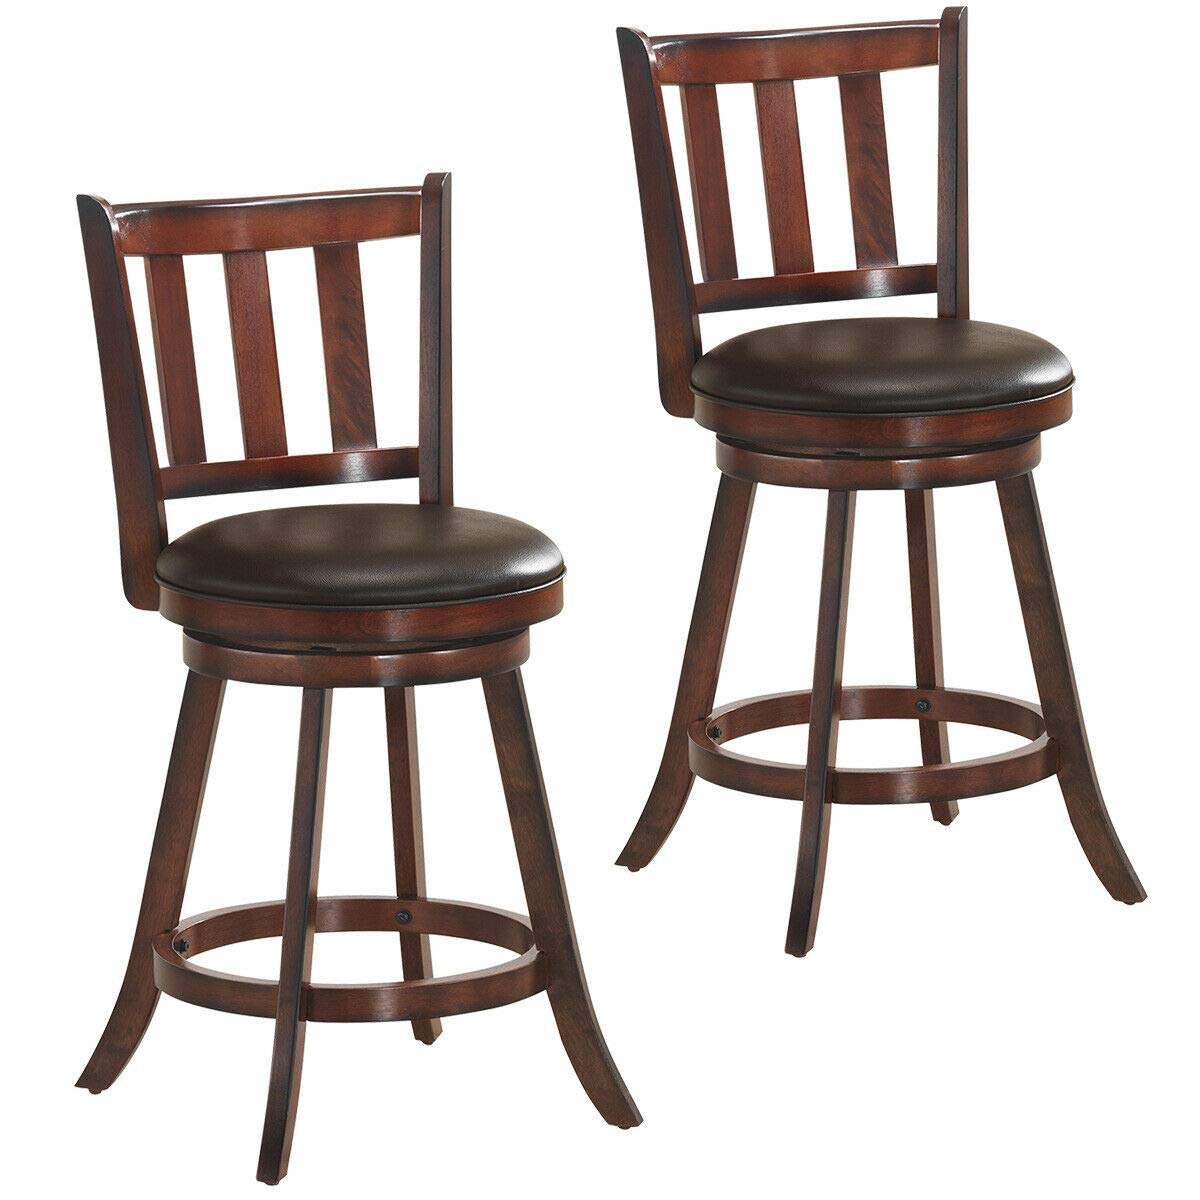 COSTWAY Bar Stools Set of 2, Counter Height Dining Chair, Fabric Upholstered 360 Degree Swivel, PVC Cushioned Seat, Perfect for Dining and Living Room Height 24.5 -Set of 2